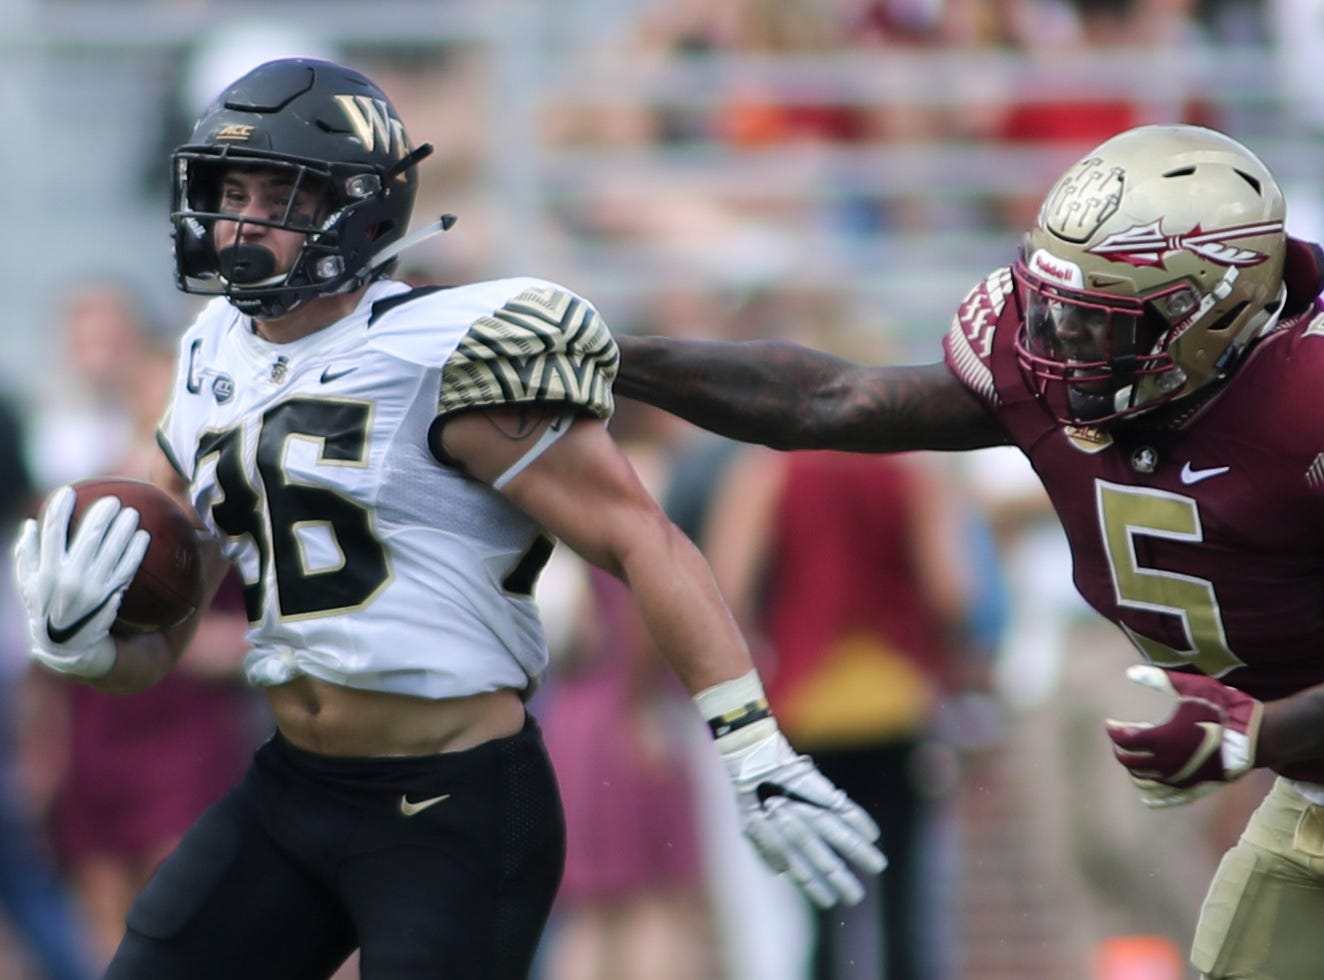 Florida State Seminoles linebacker Dontavious Jackson (5) tries to tackle Wake Forest Demon Deacons running back Cade Carney (36) during FSU's homecoming game against Wake Forest at Doak S. Campbell Stadium Saturday, Oct. 20, 2018.